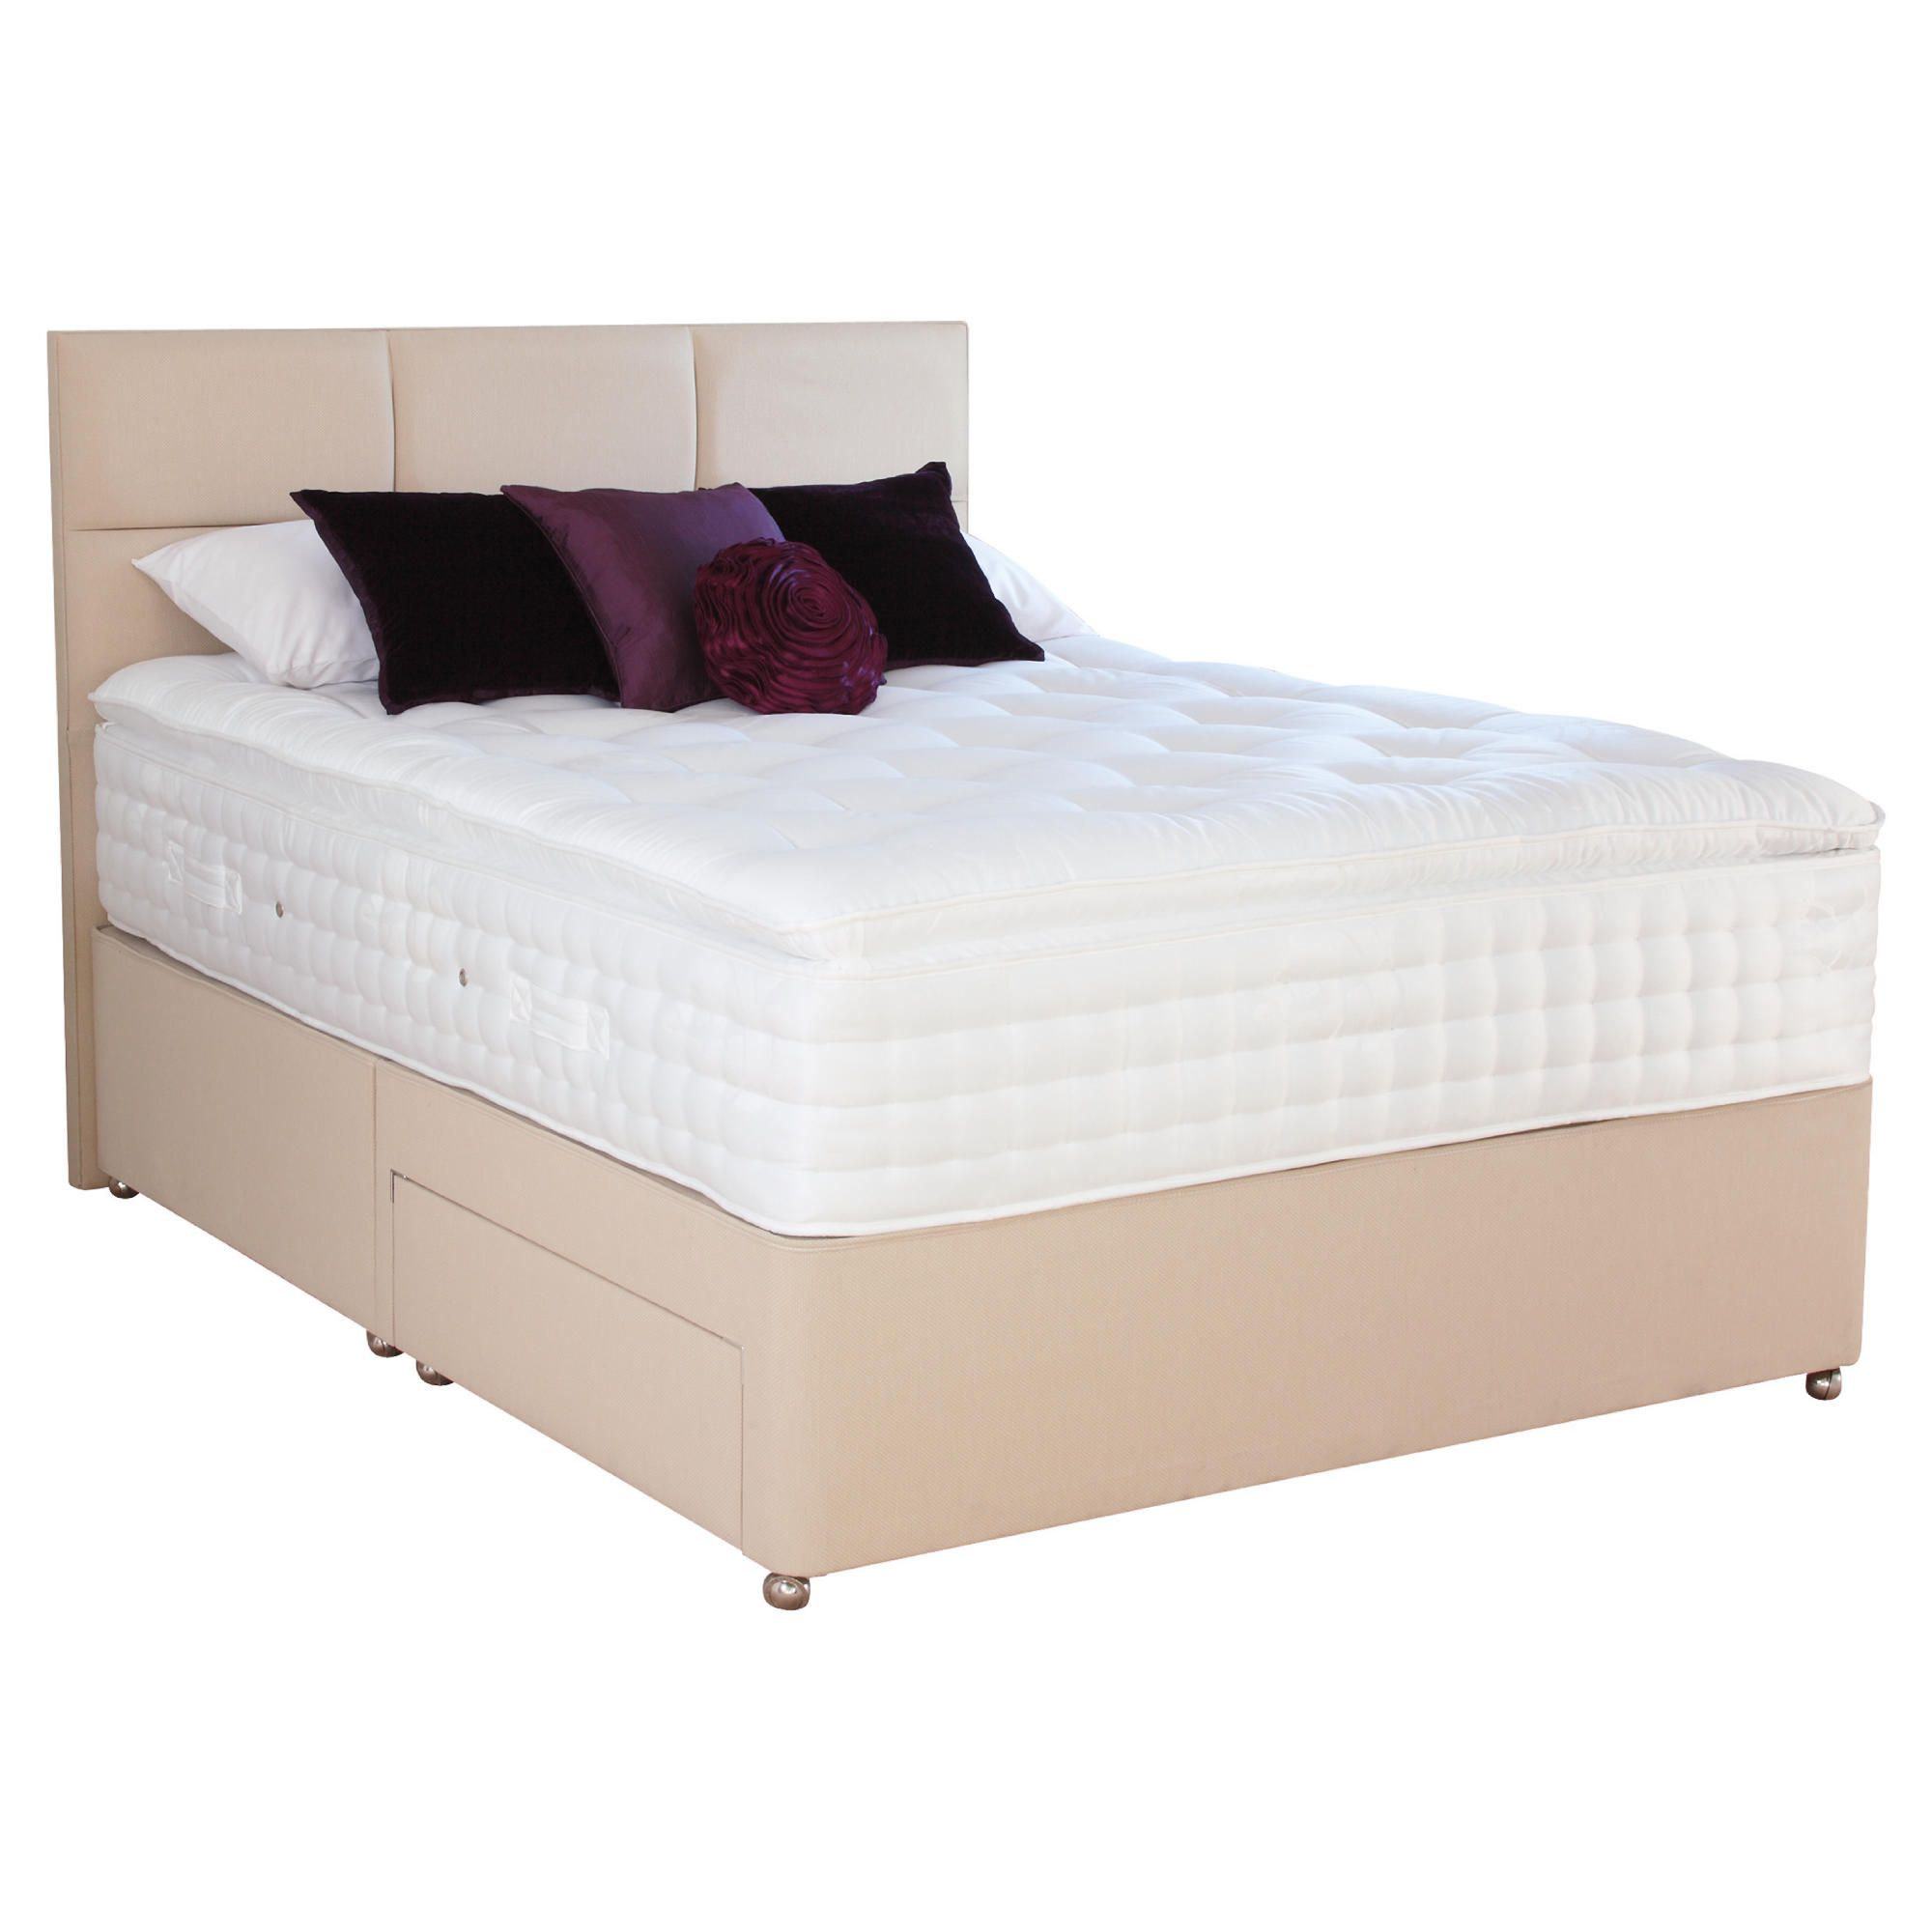 Relyon Luxury 2400 2 Drawer Divan Bed Superking at Tesco Direct